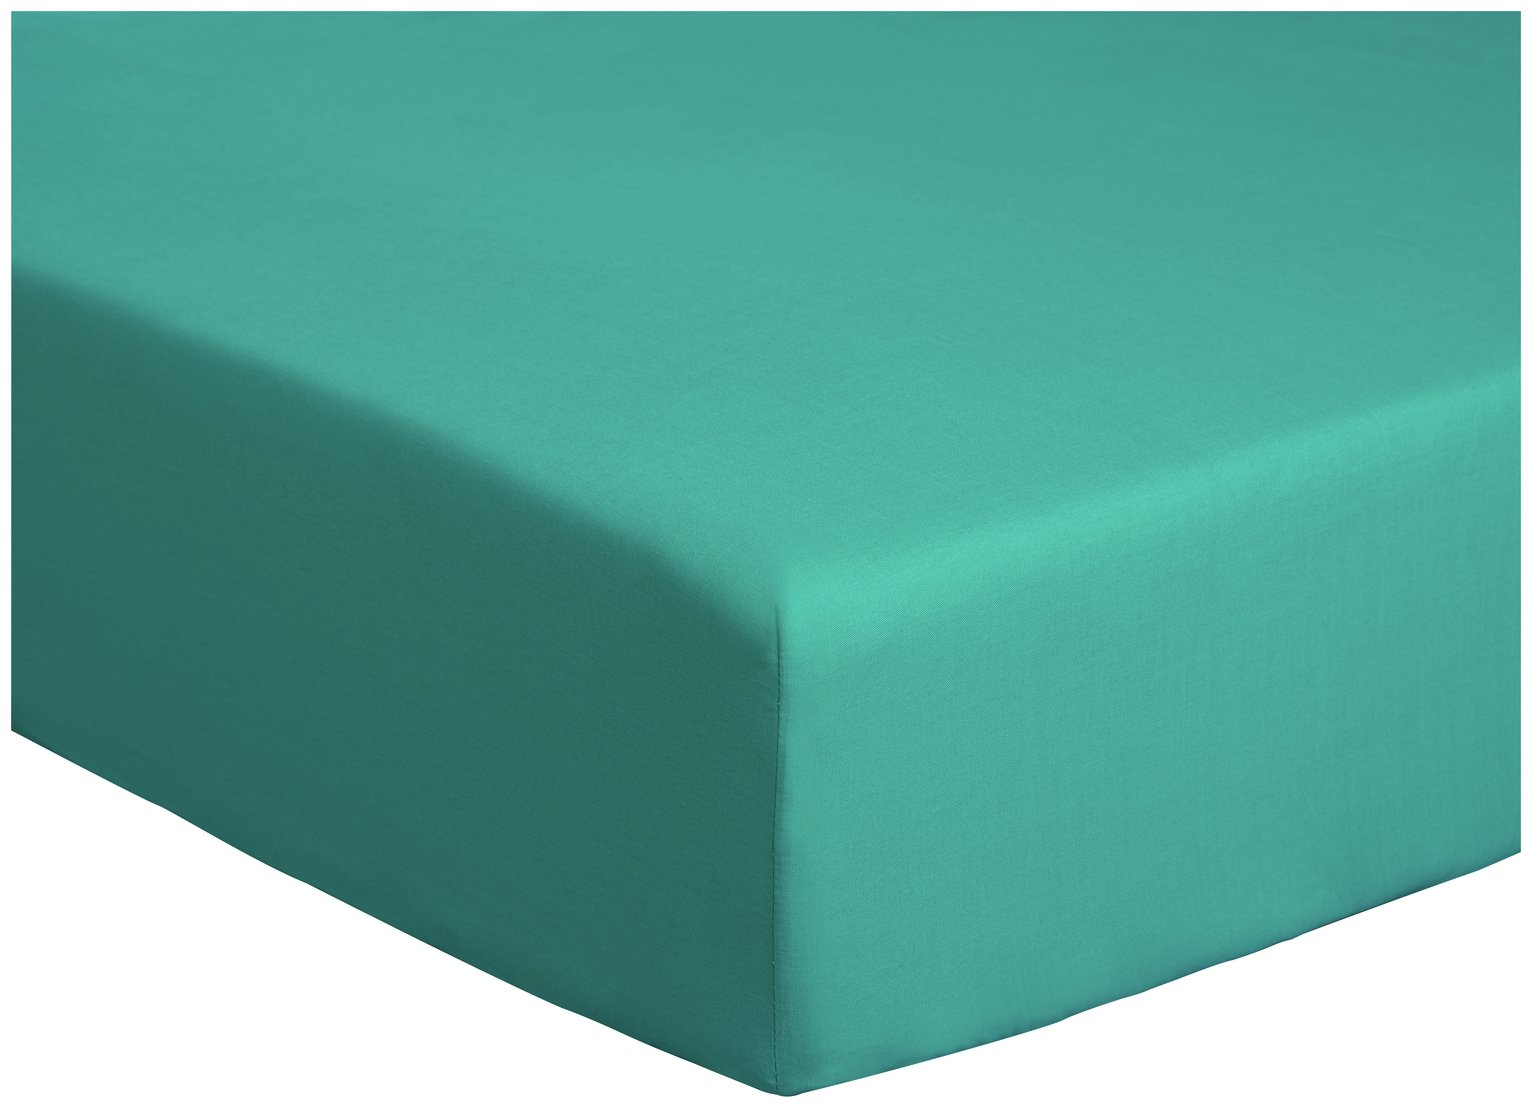 Argos Home Easycare Polycotton 28cm Fitted Sheet - Double